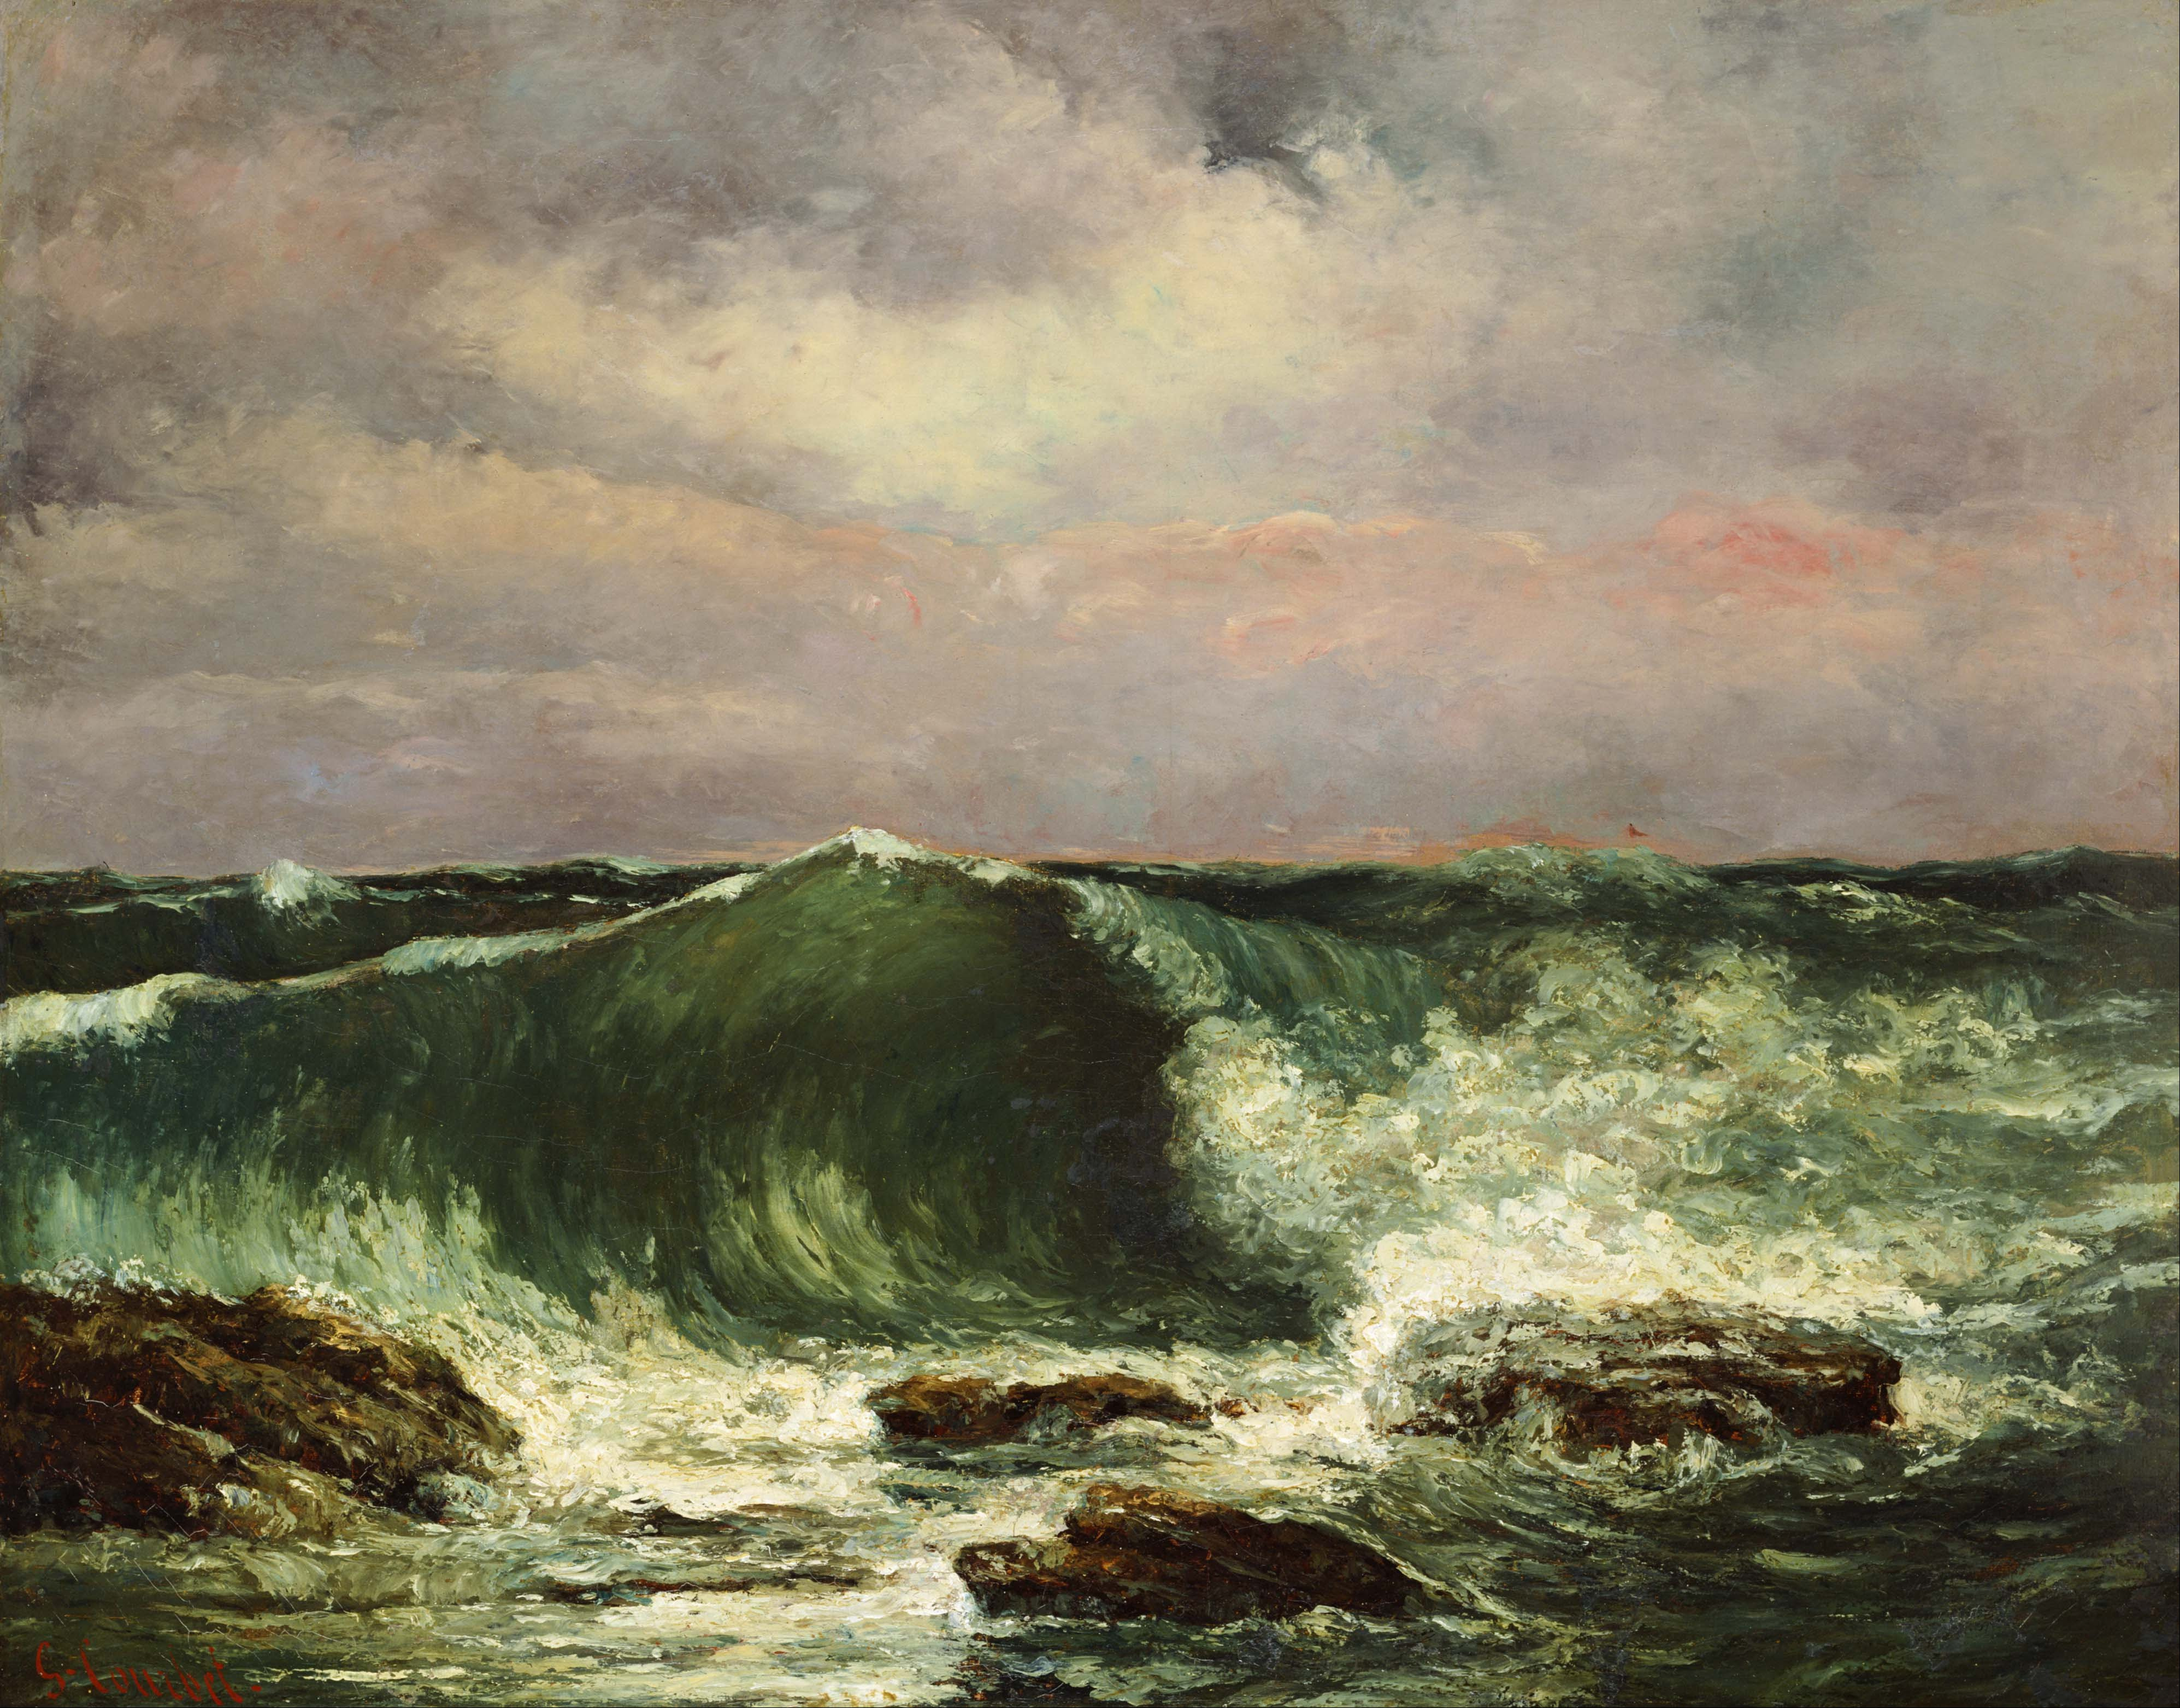 https://upload.wikimedia.org/wikipedia/commons/a/ac/Gustave_Courbet_-_Waves_-_Google_Art_Project.jpg